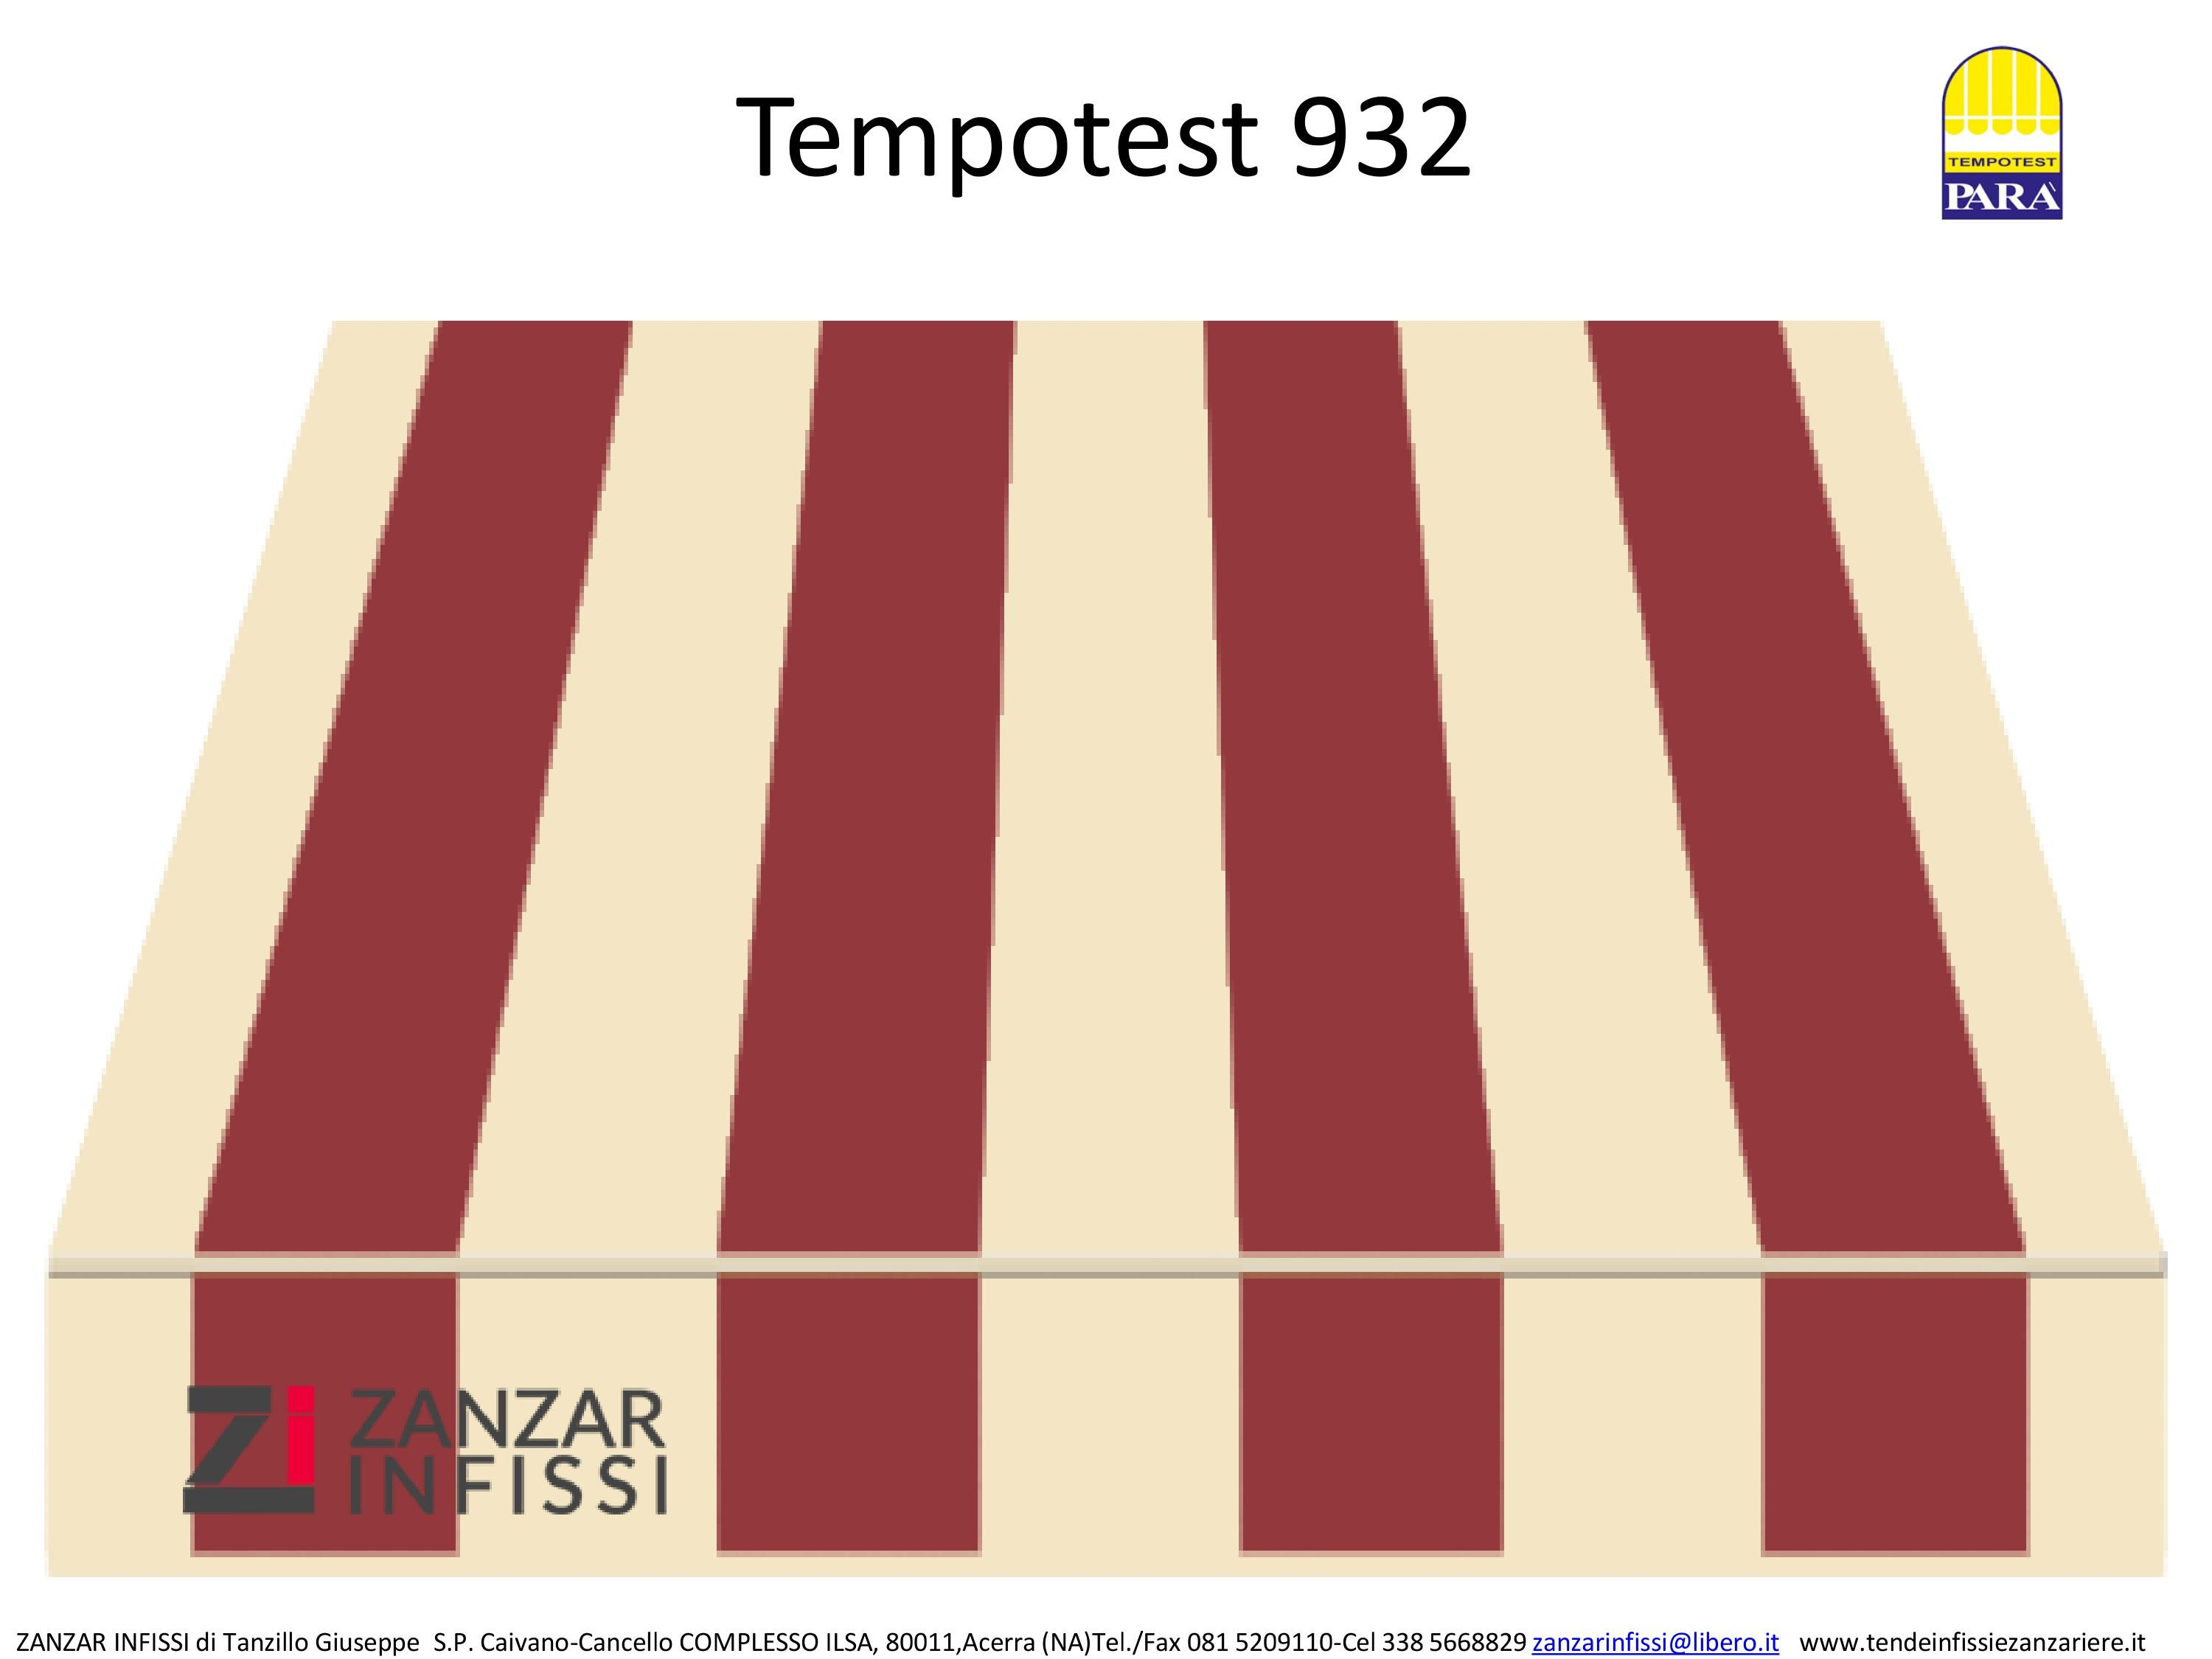 Tempotest 932